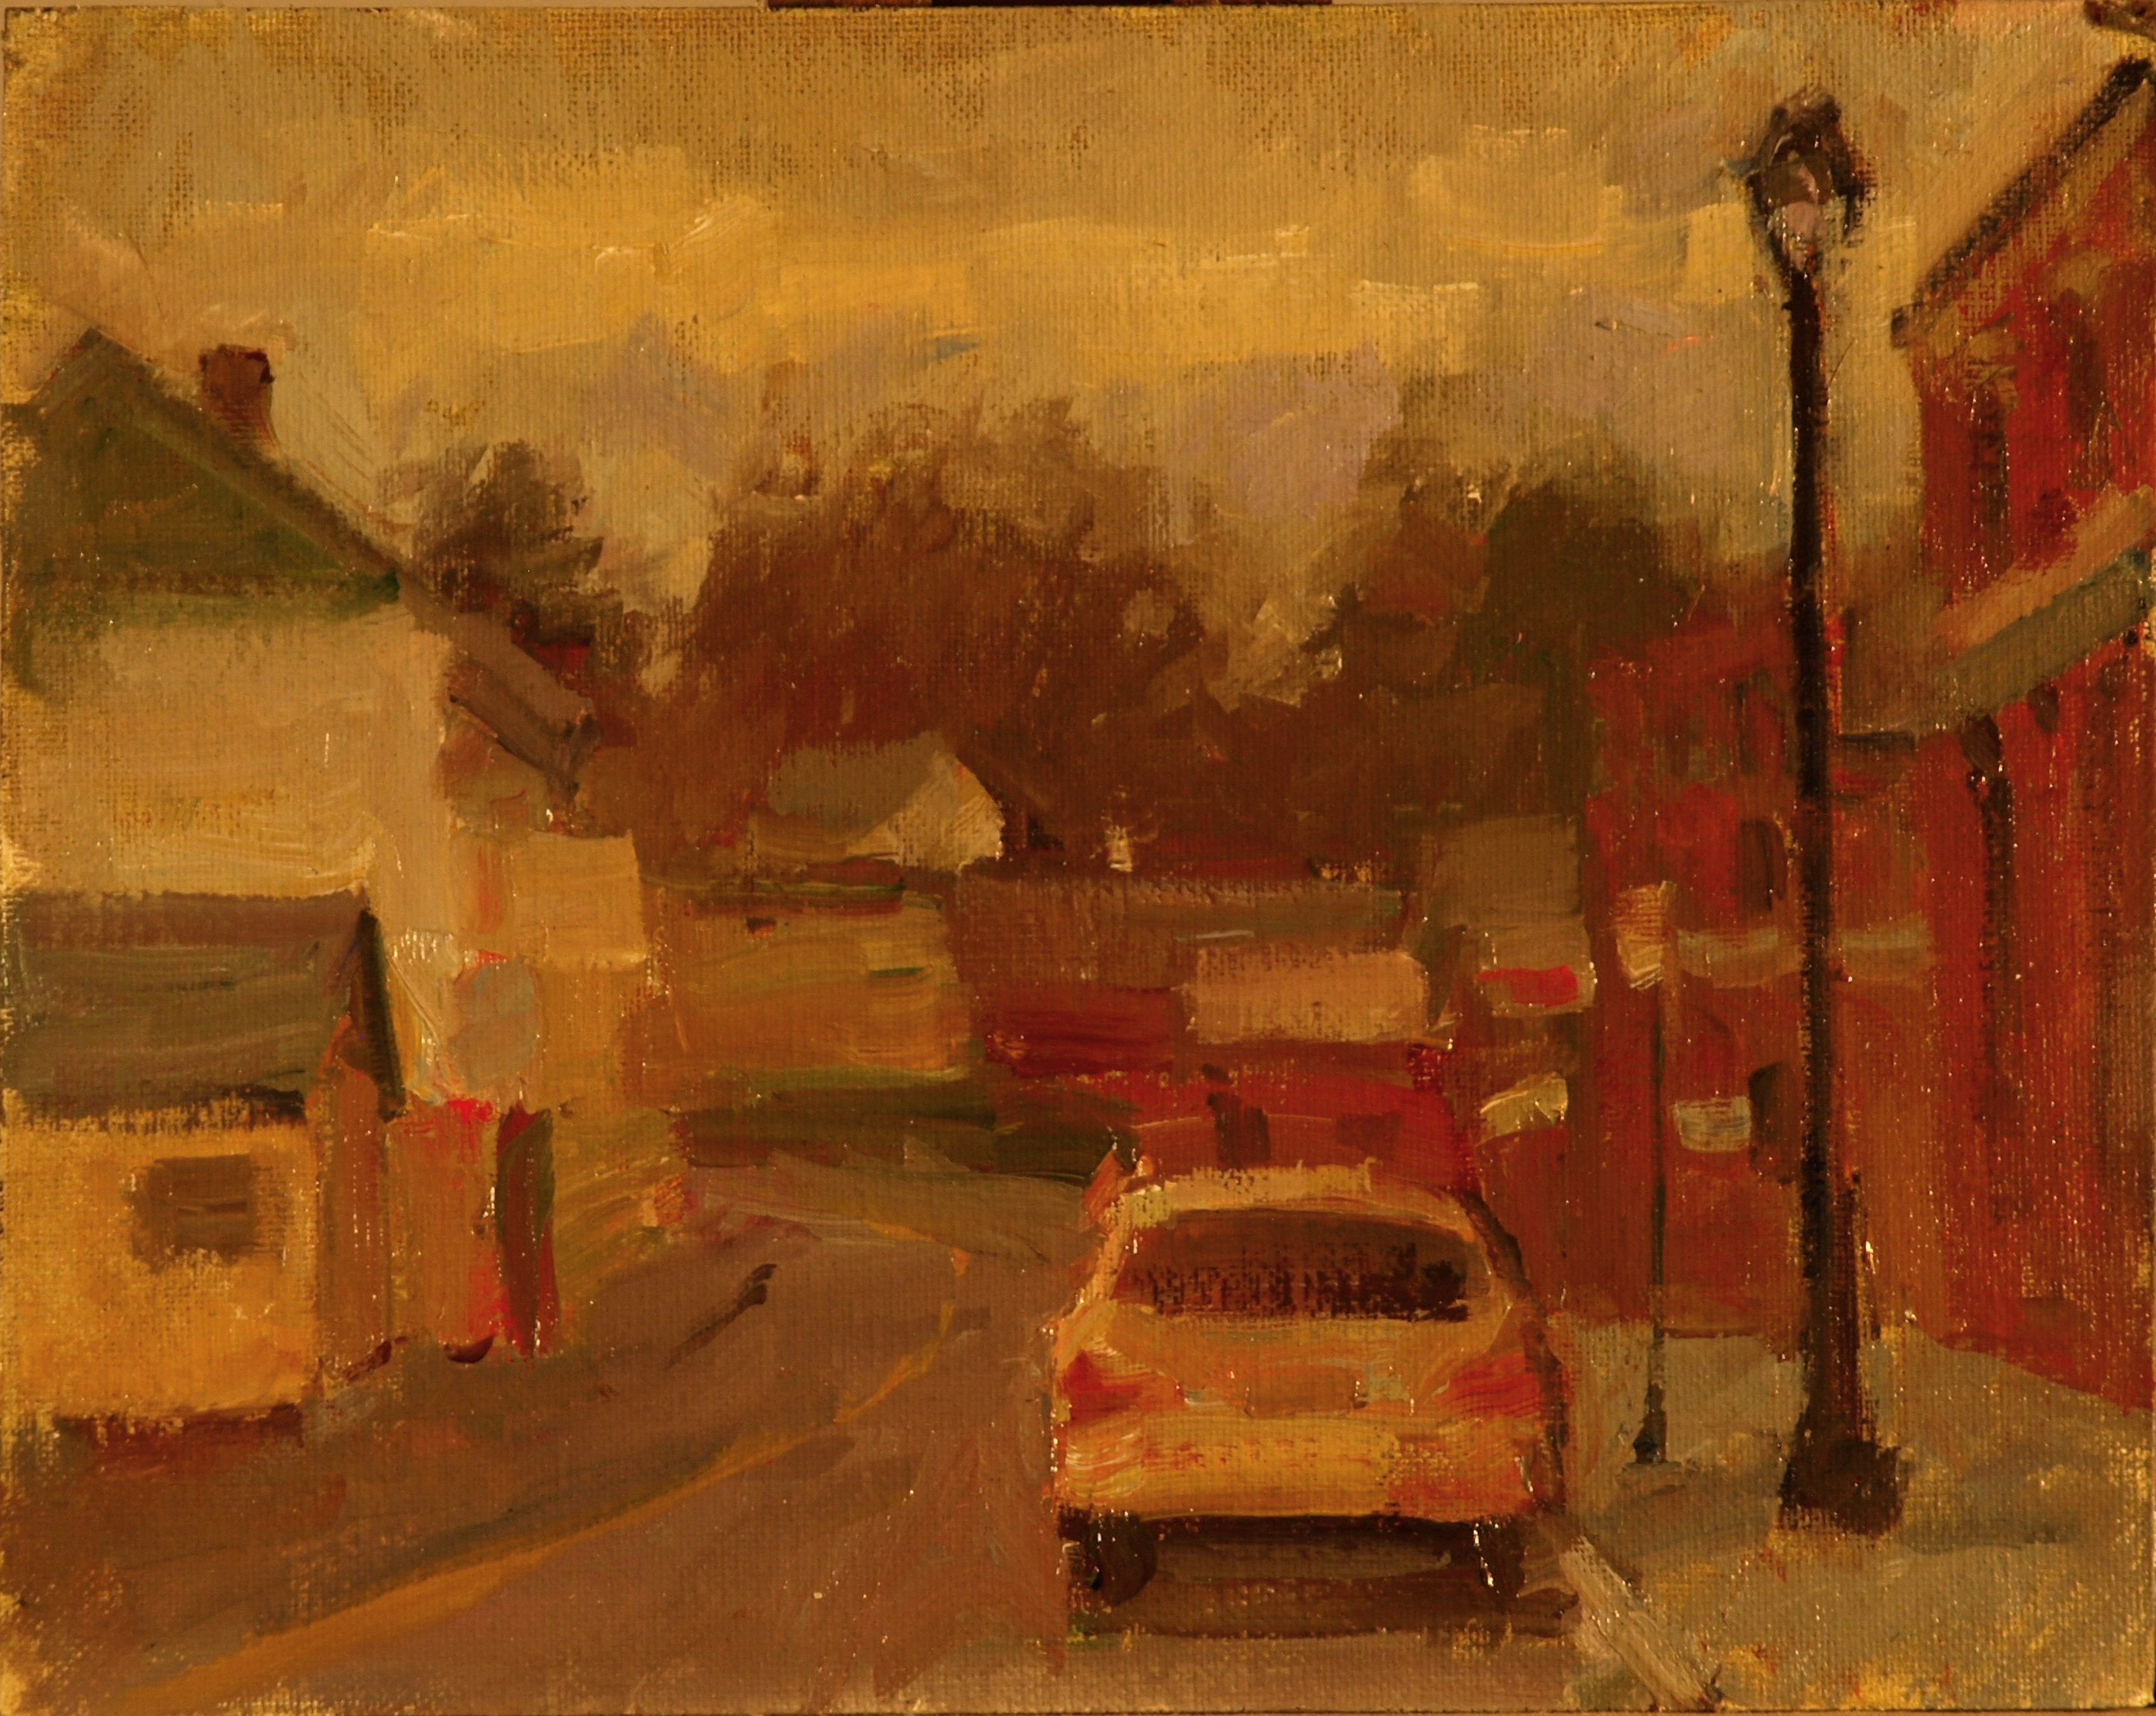 Gray Day - Railroad Street, Oil on Canvas on Panel, 8 x 10 Inches, by Susan Grisell, $150